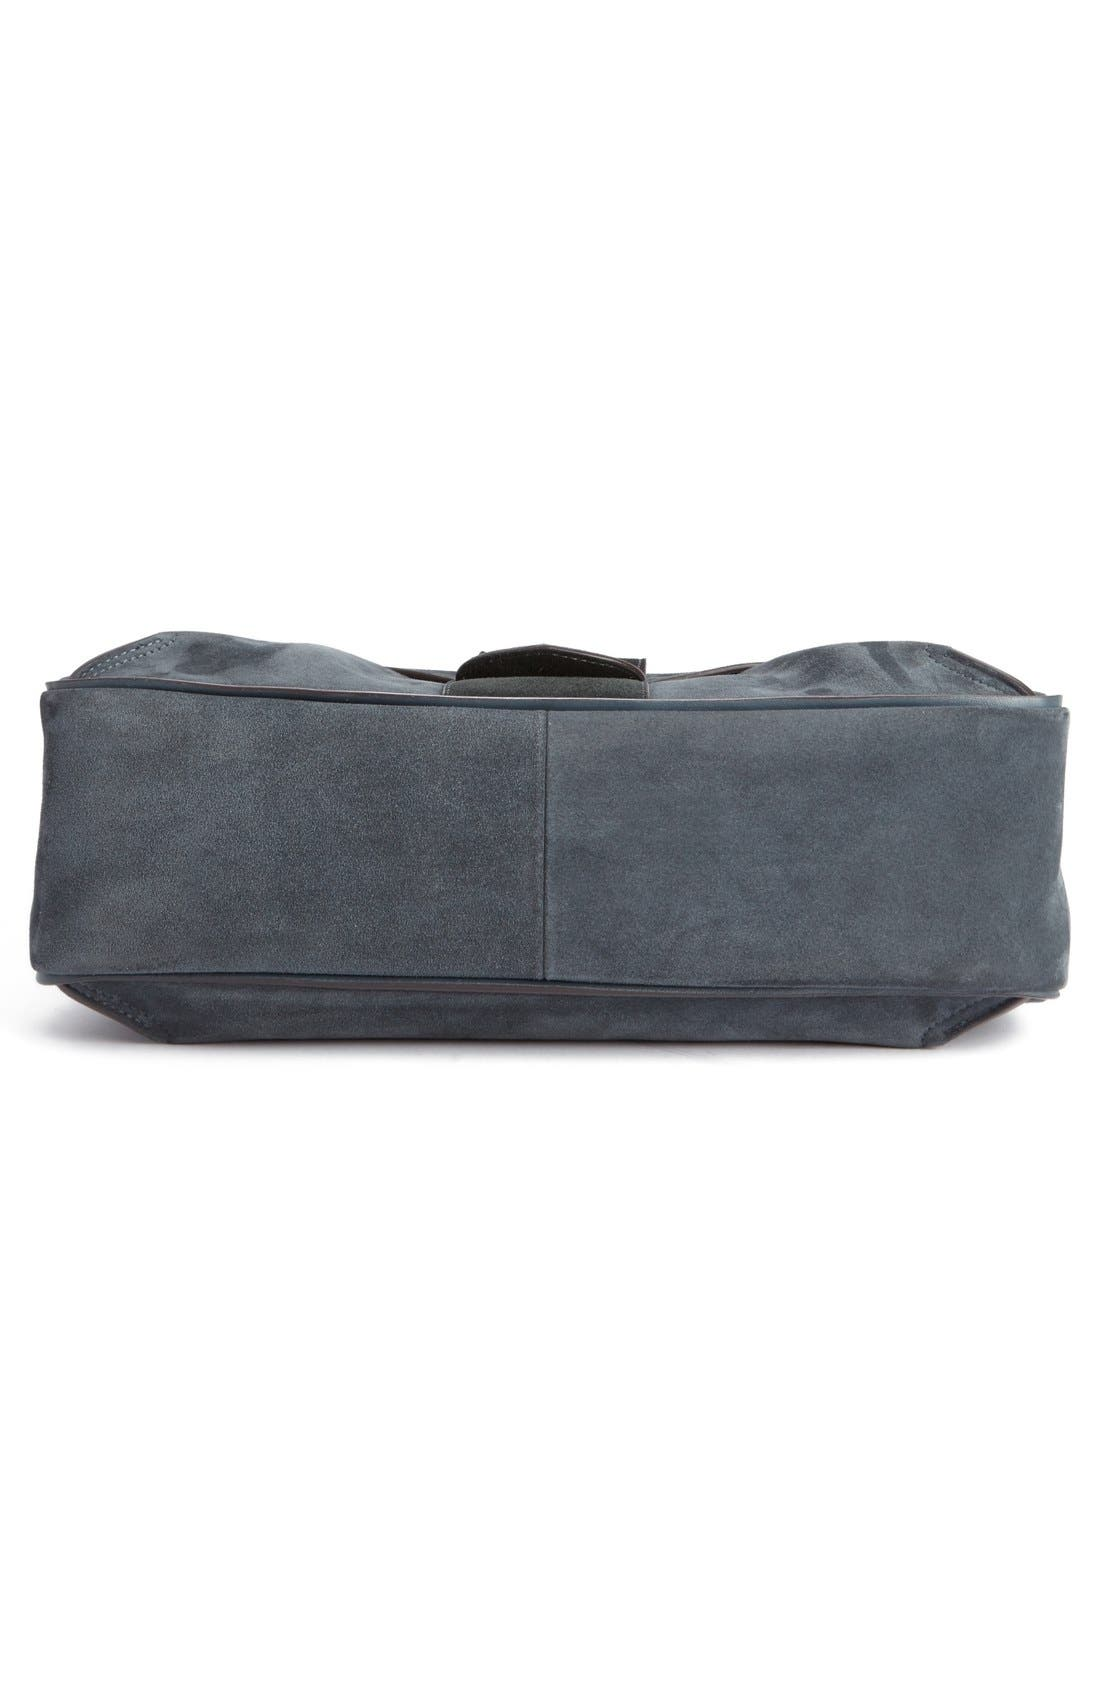 'Medium Lexa' Suede Shoulder Bag,                             Alternate thumbnail 5, color,                             Silver Blue